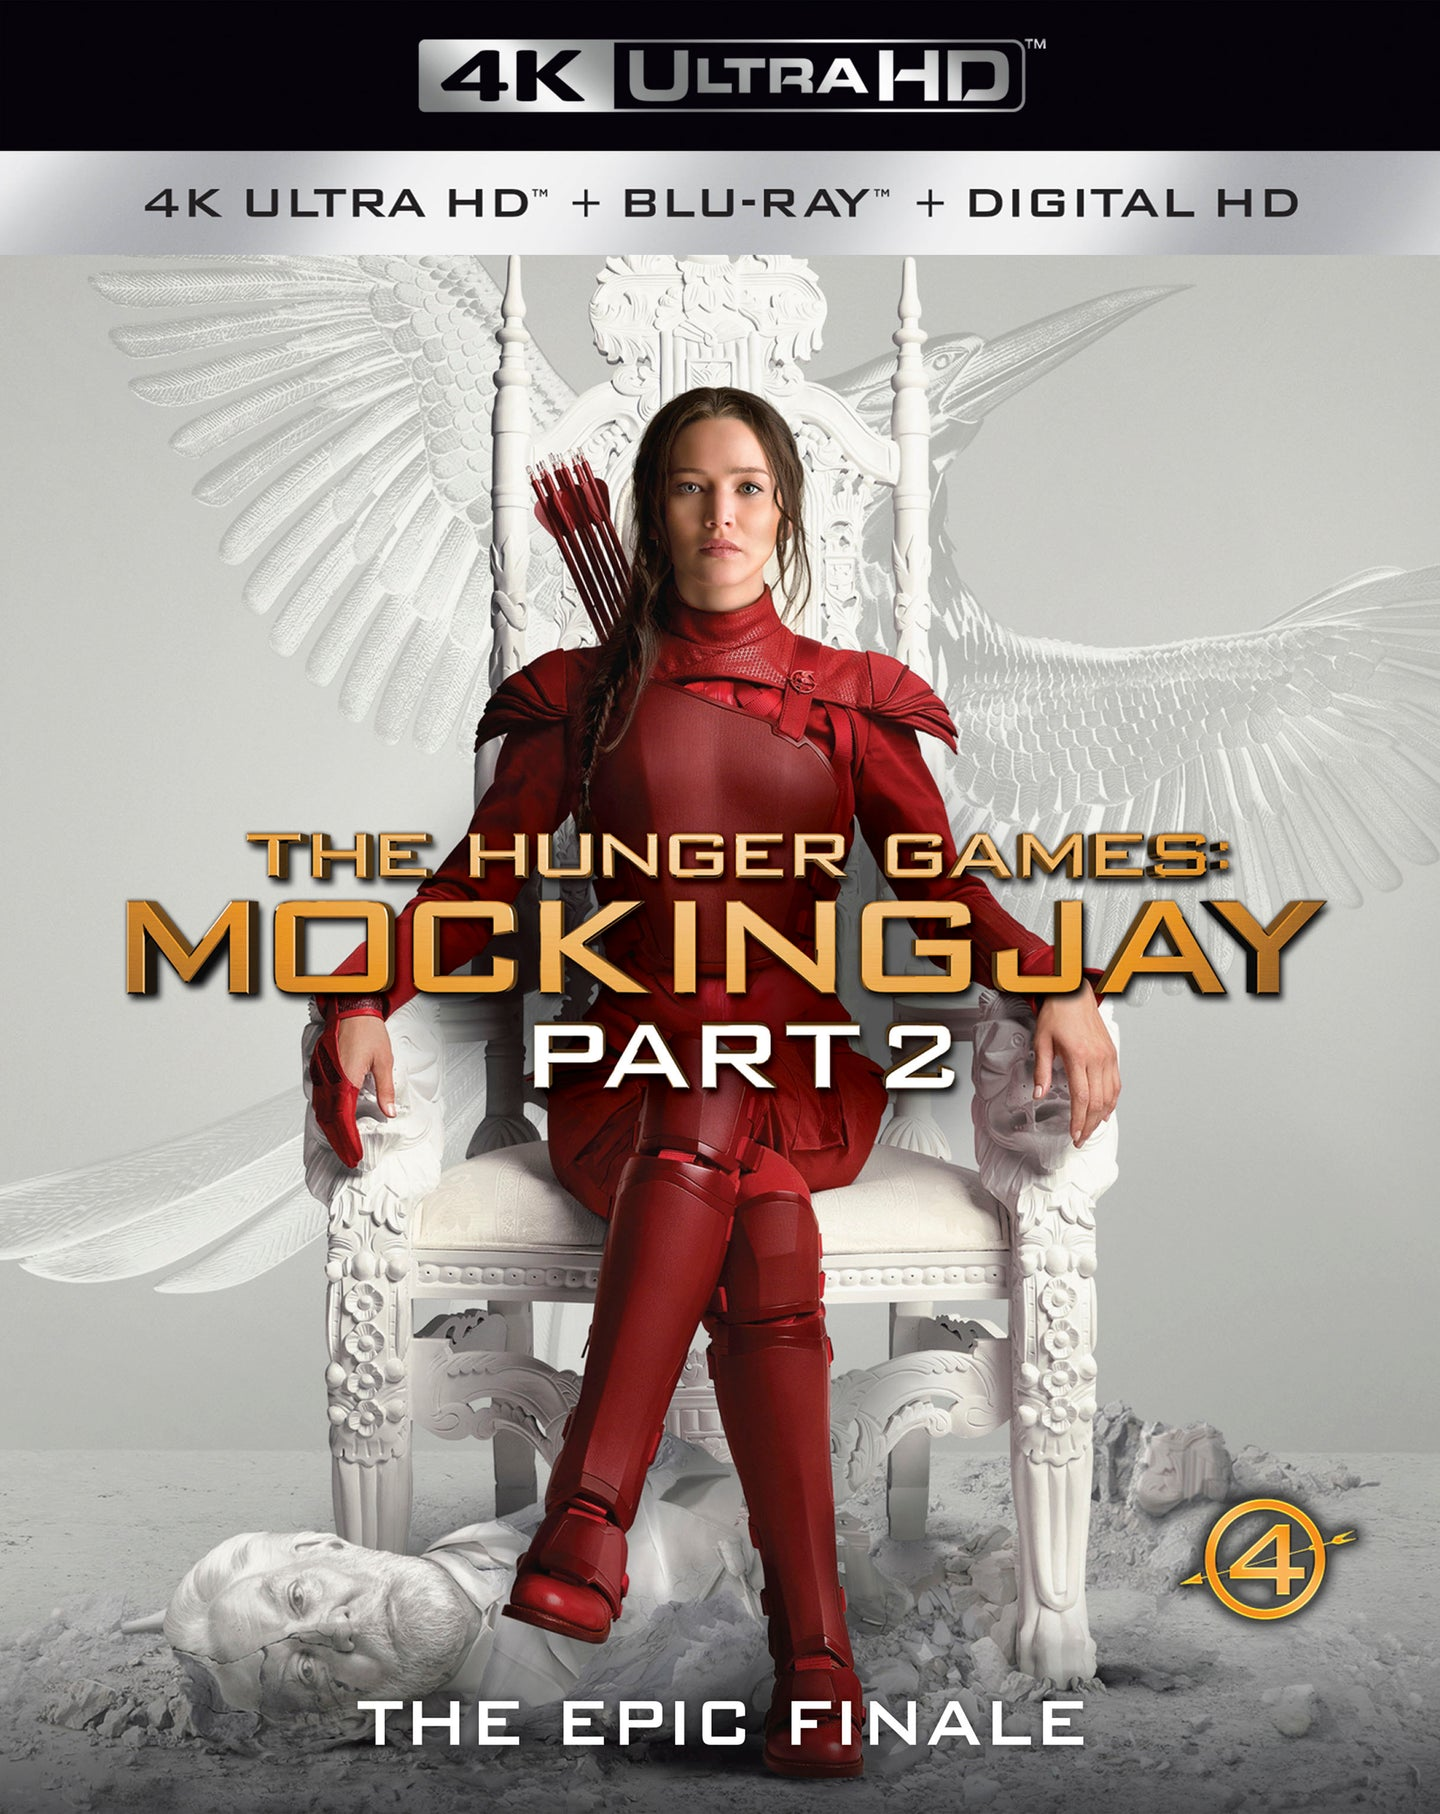 The Hunger Games: Mockingjay Part 2 (2015) Vudu 4K redemption only